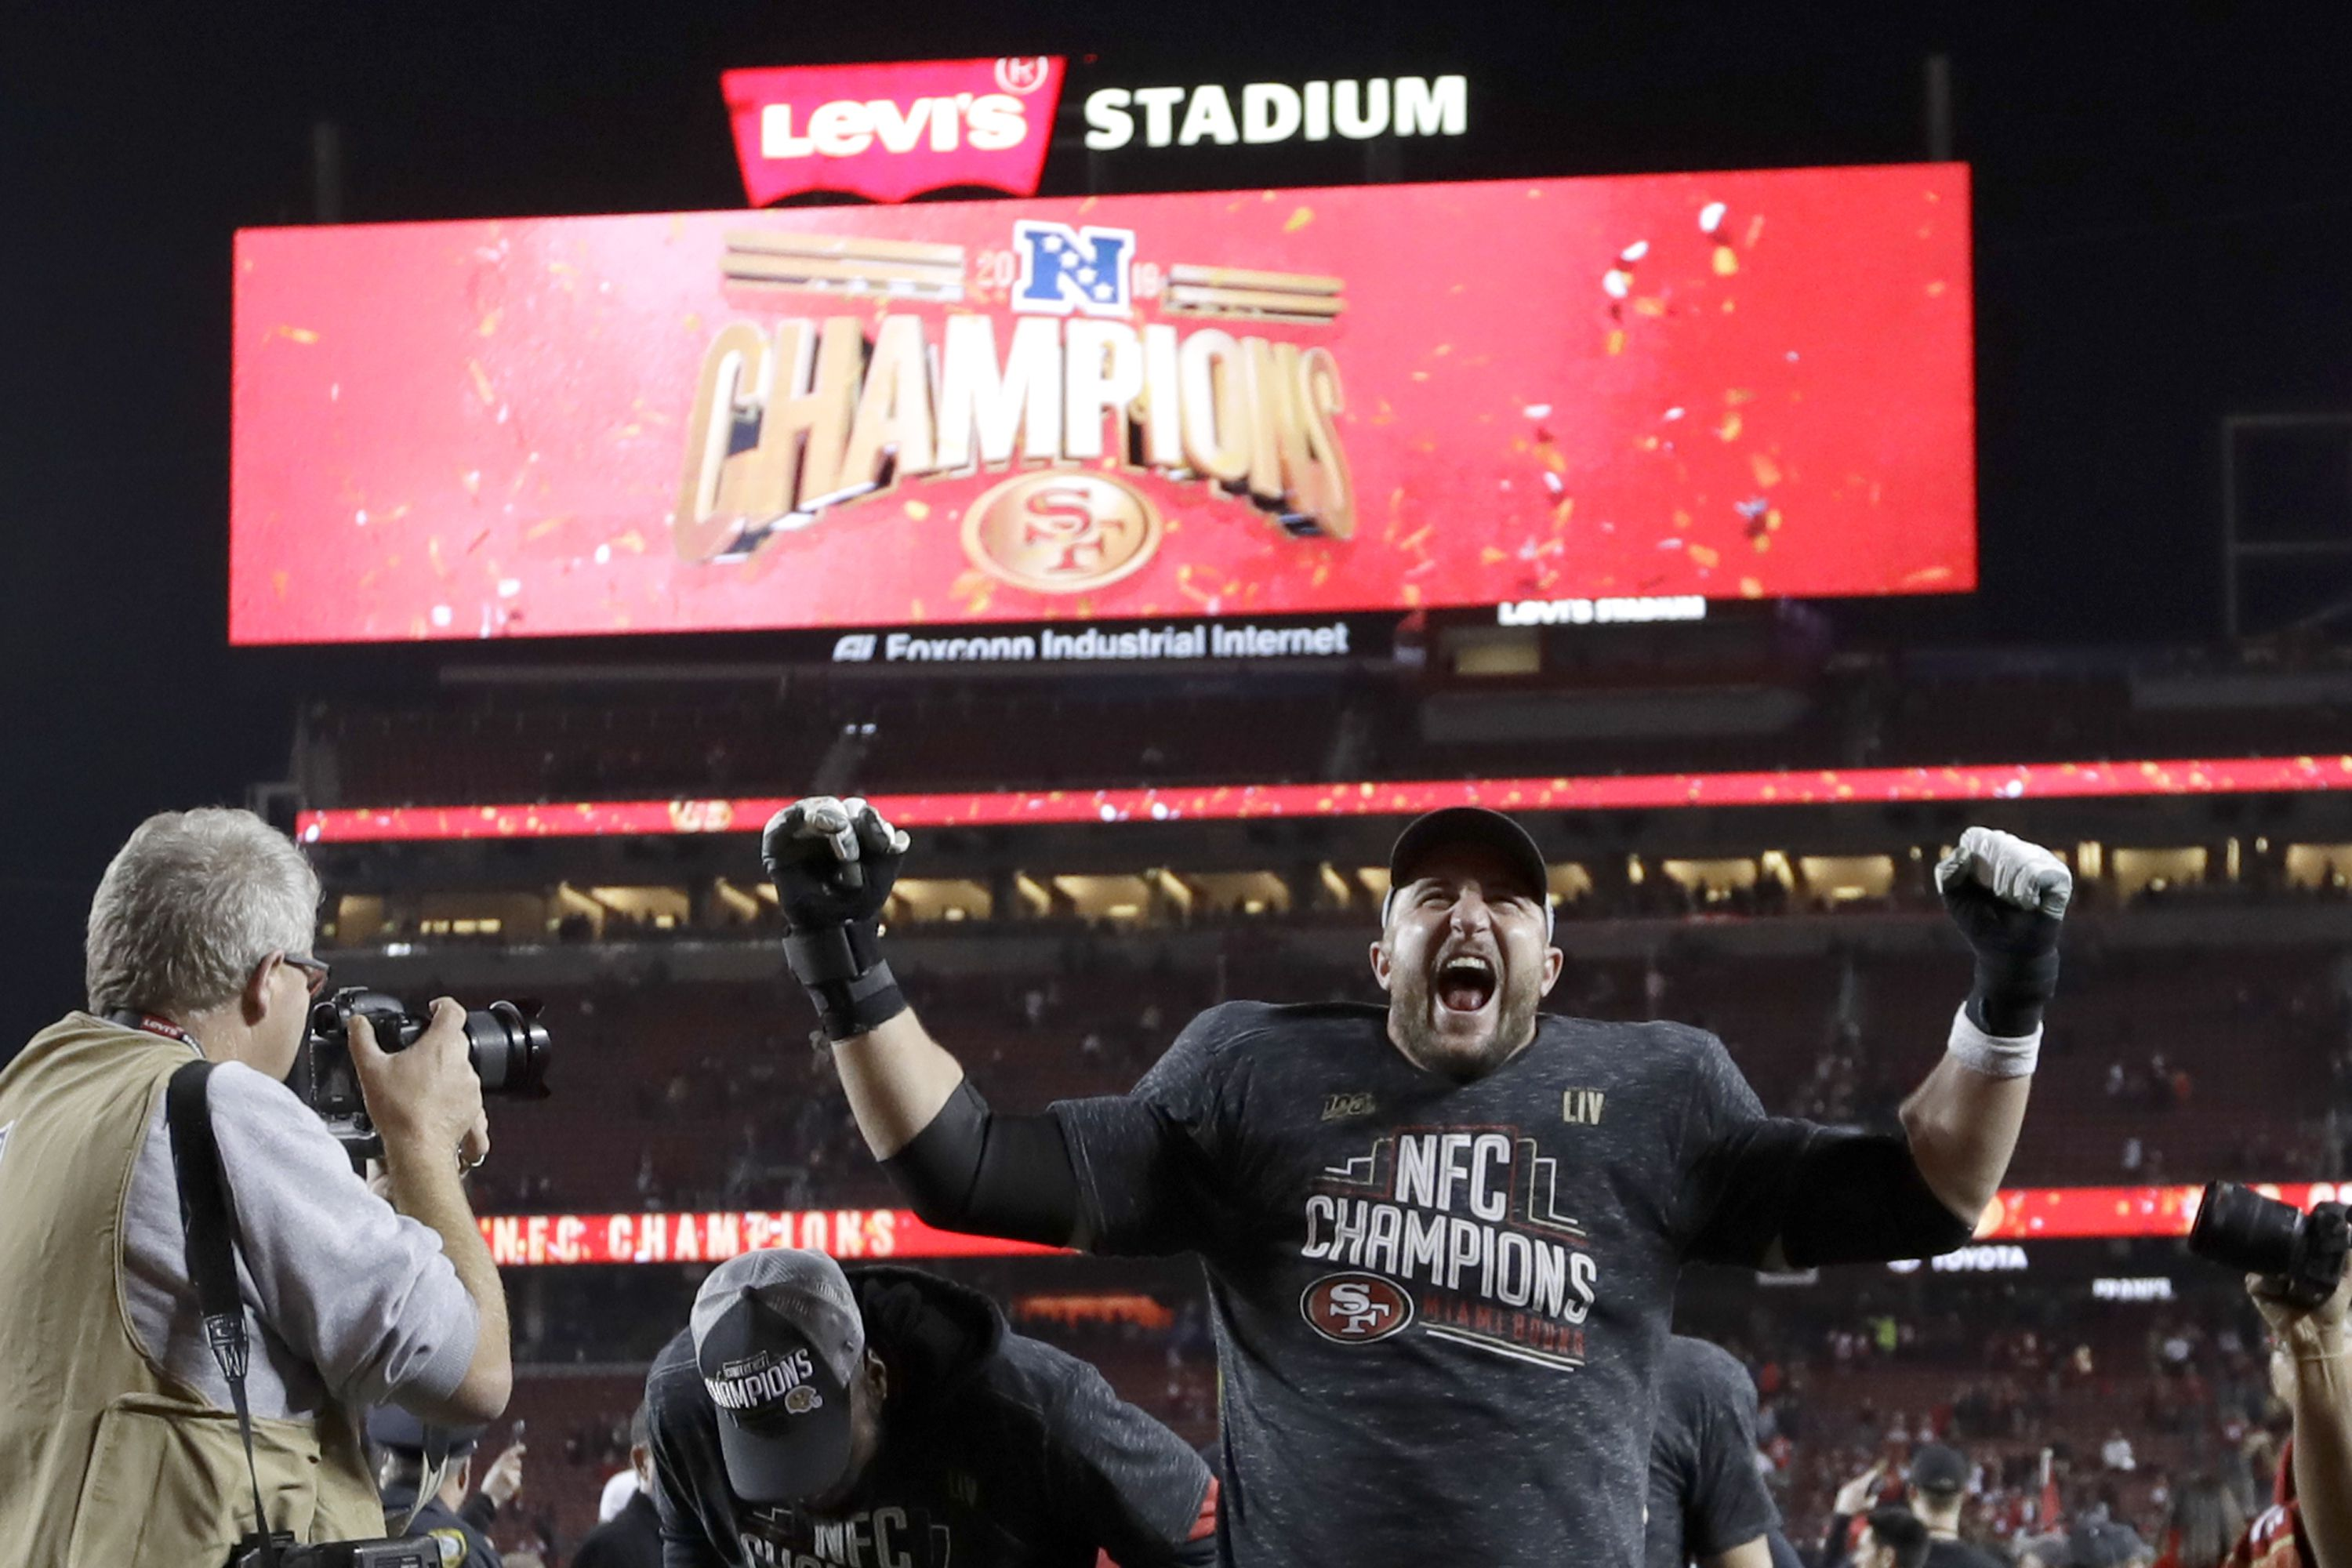 Super Bowl 2020 49ers Chiefs Tickets Selling For Record